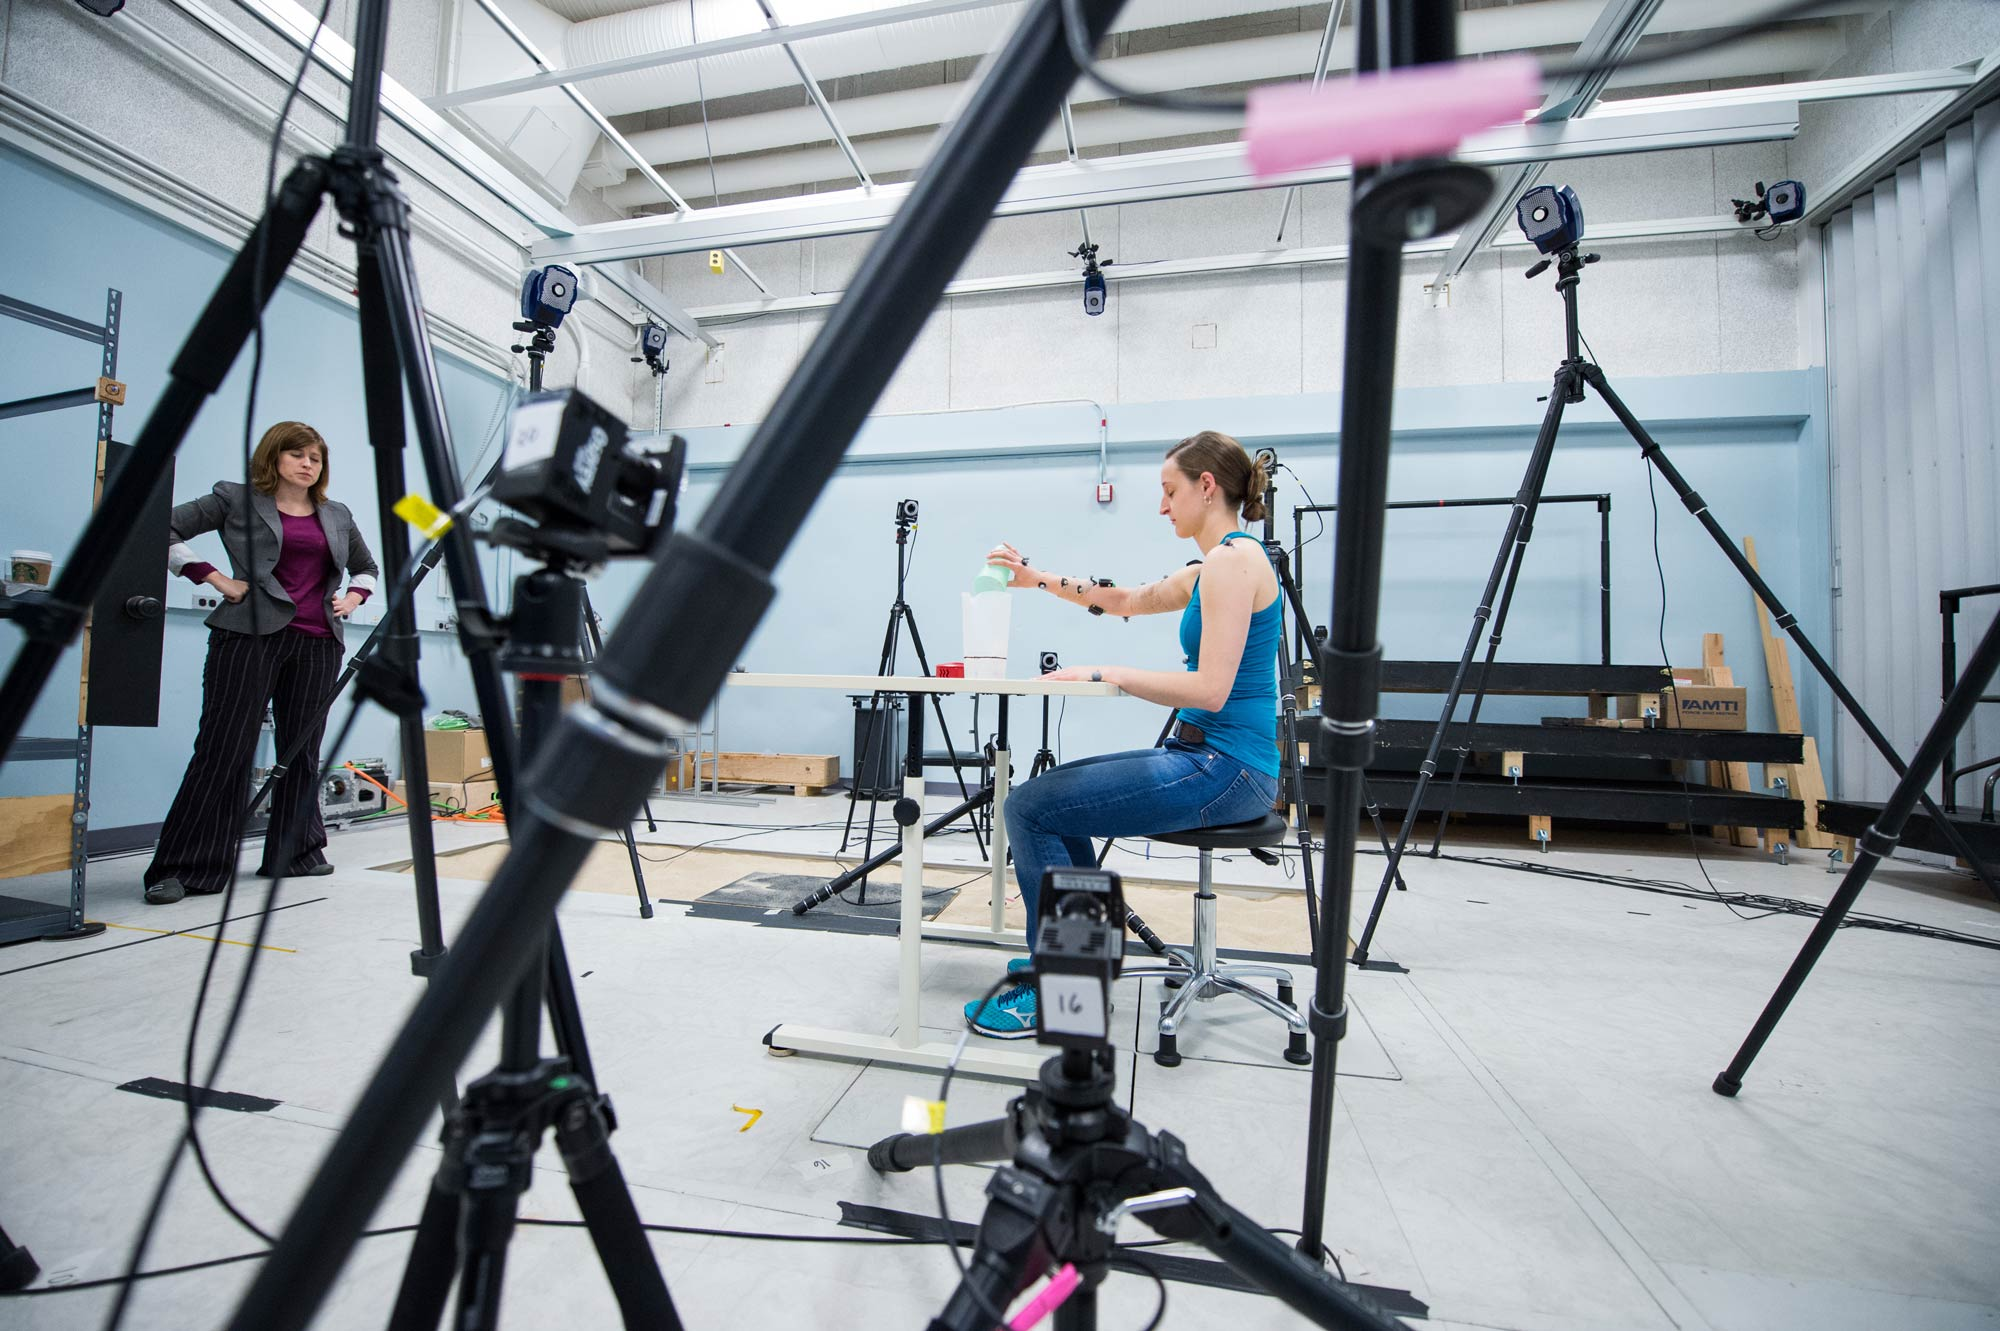 Deanna Gates, director of the Rehabilitation Biomechanics Laboratory at the University of Michigan observes as participant Kali Almdale pours a glass of water. They're recording Almdale's wrist movements using sensors. Image credit: Austin Thomason, Michigan Photography